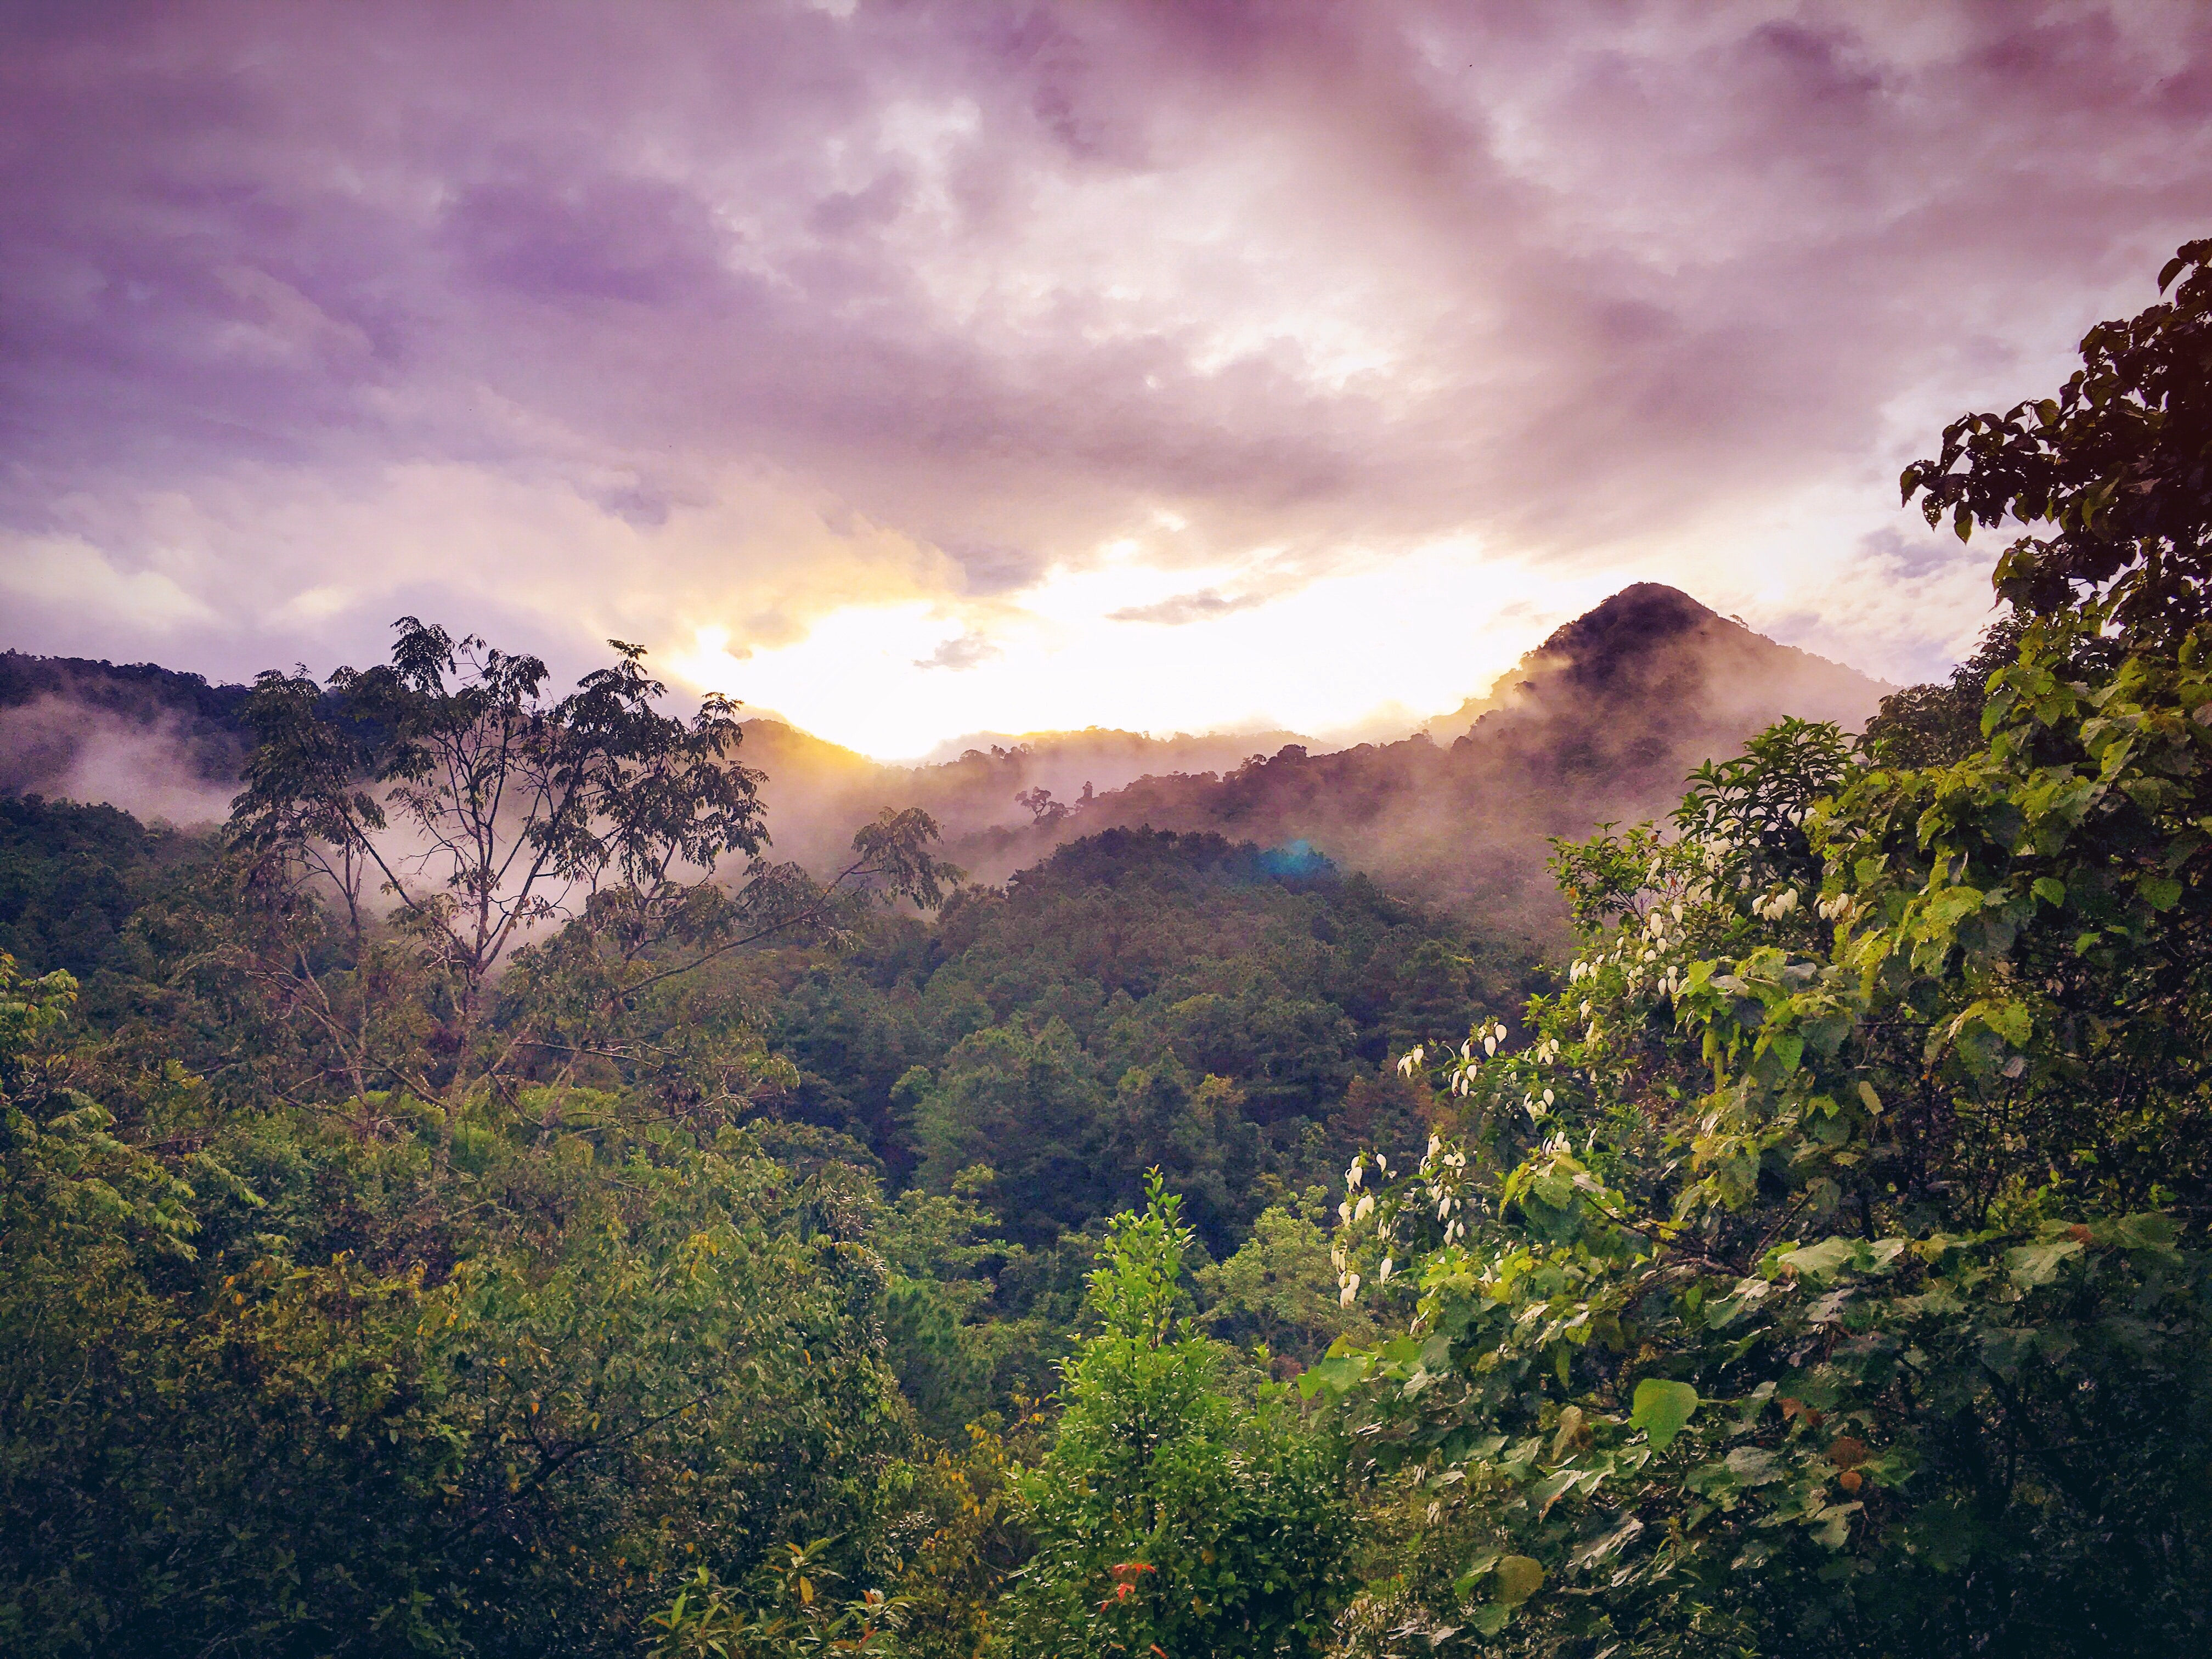 brown mountain under cloudy sky during sunset  u00b7 free stock photo